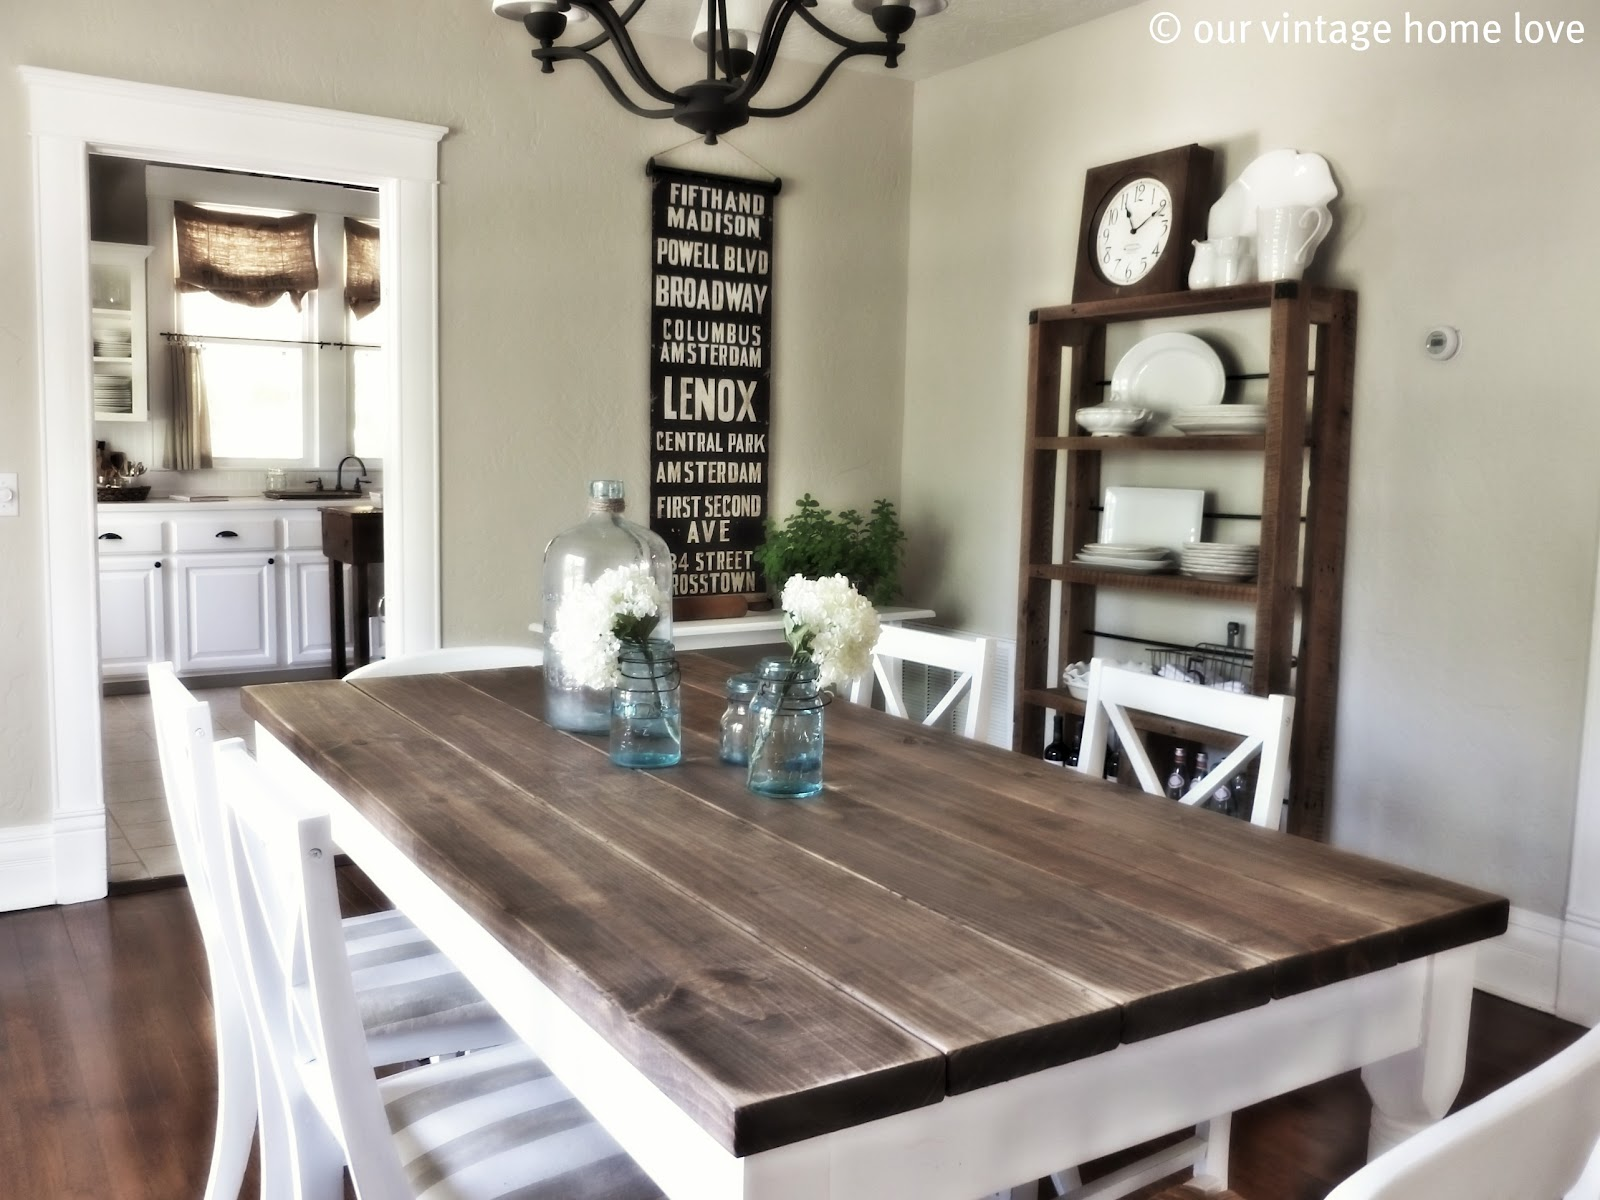 our vintage home love dining room table - Best Wood For Dining Room Table